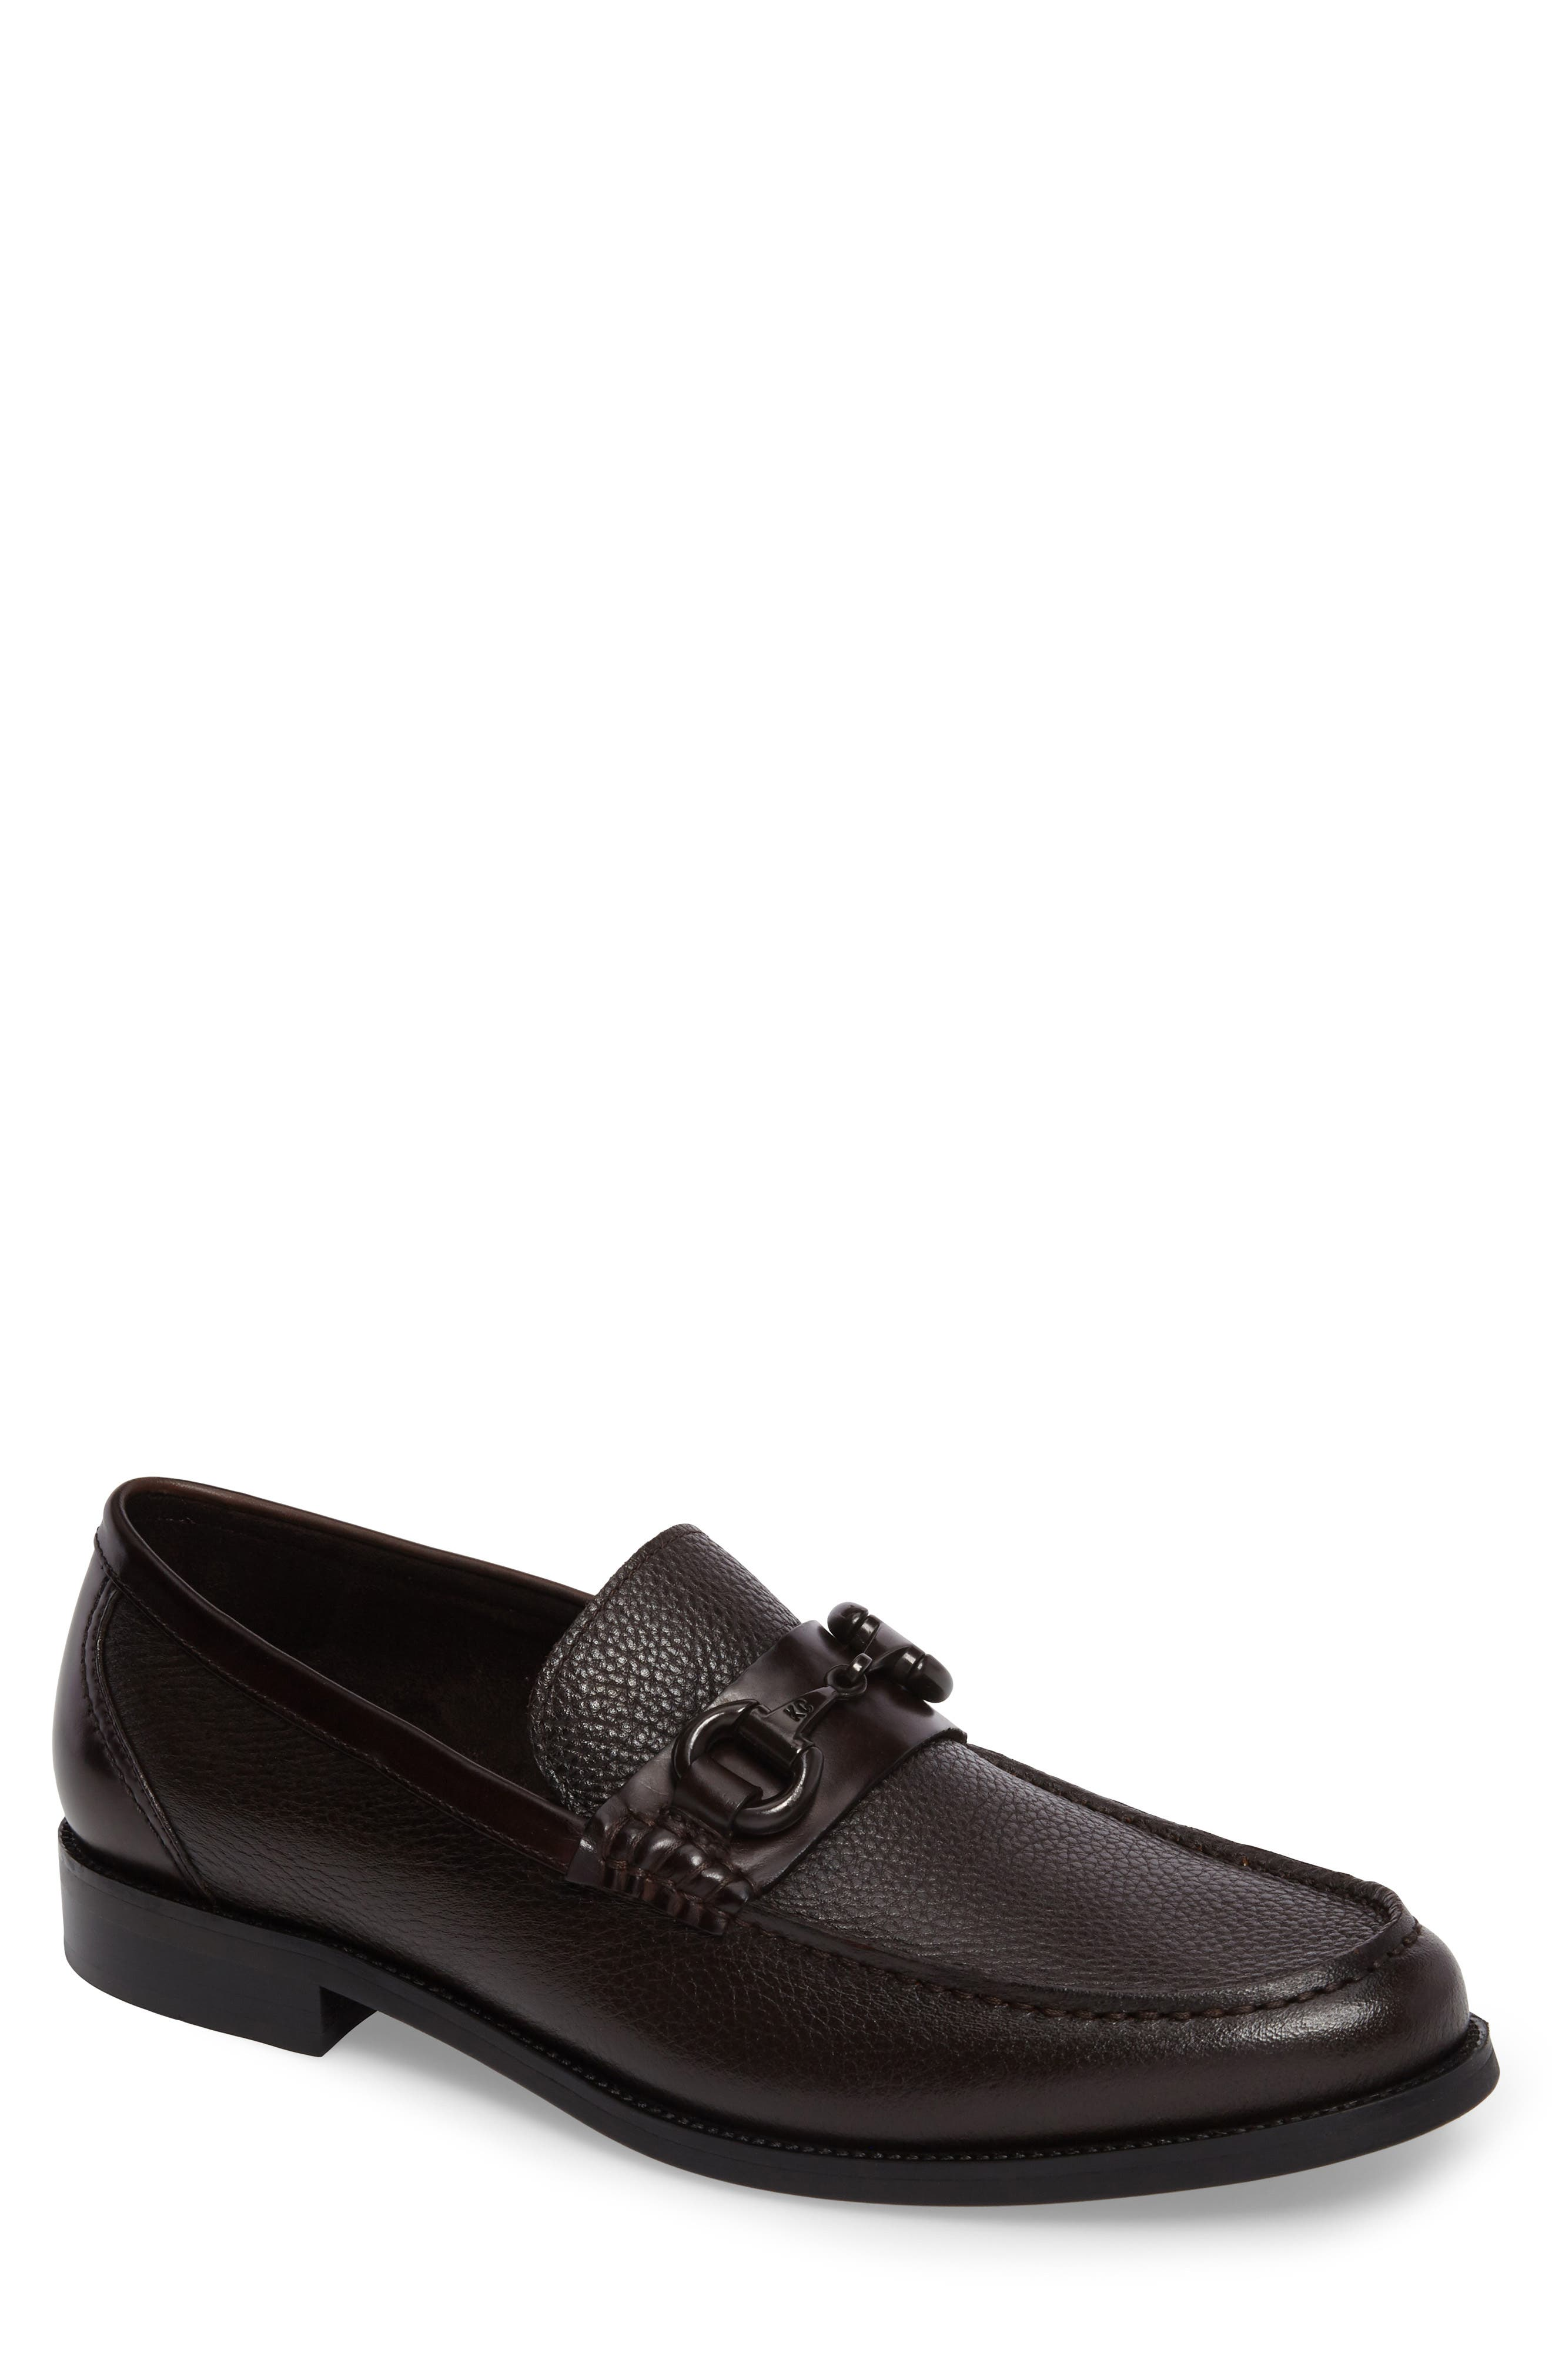 Alternate Image 1 Selected - Kenneth Cole New York Bit Loafer (Men)